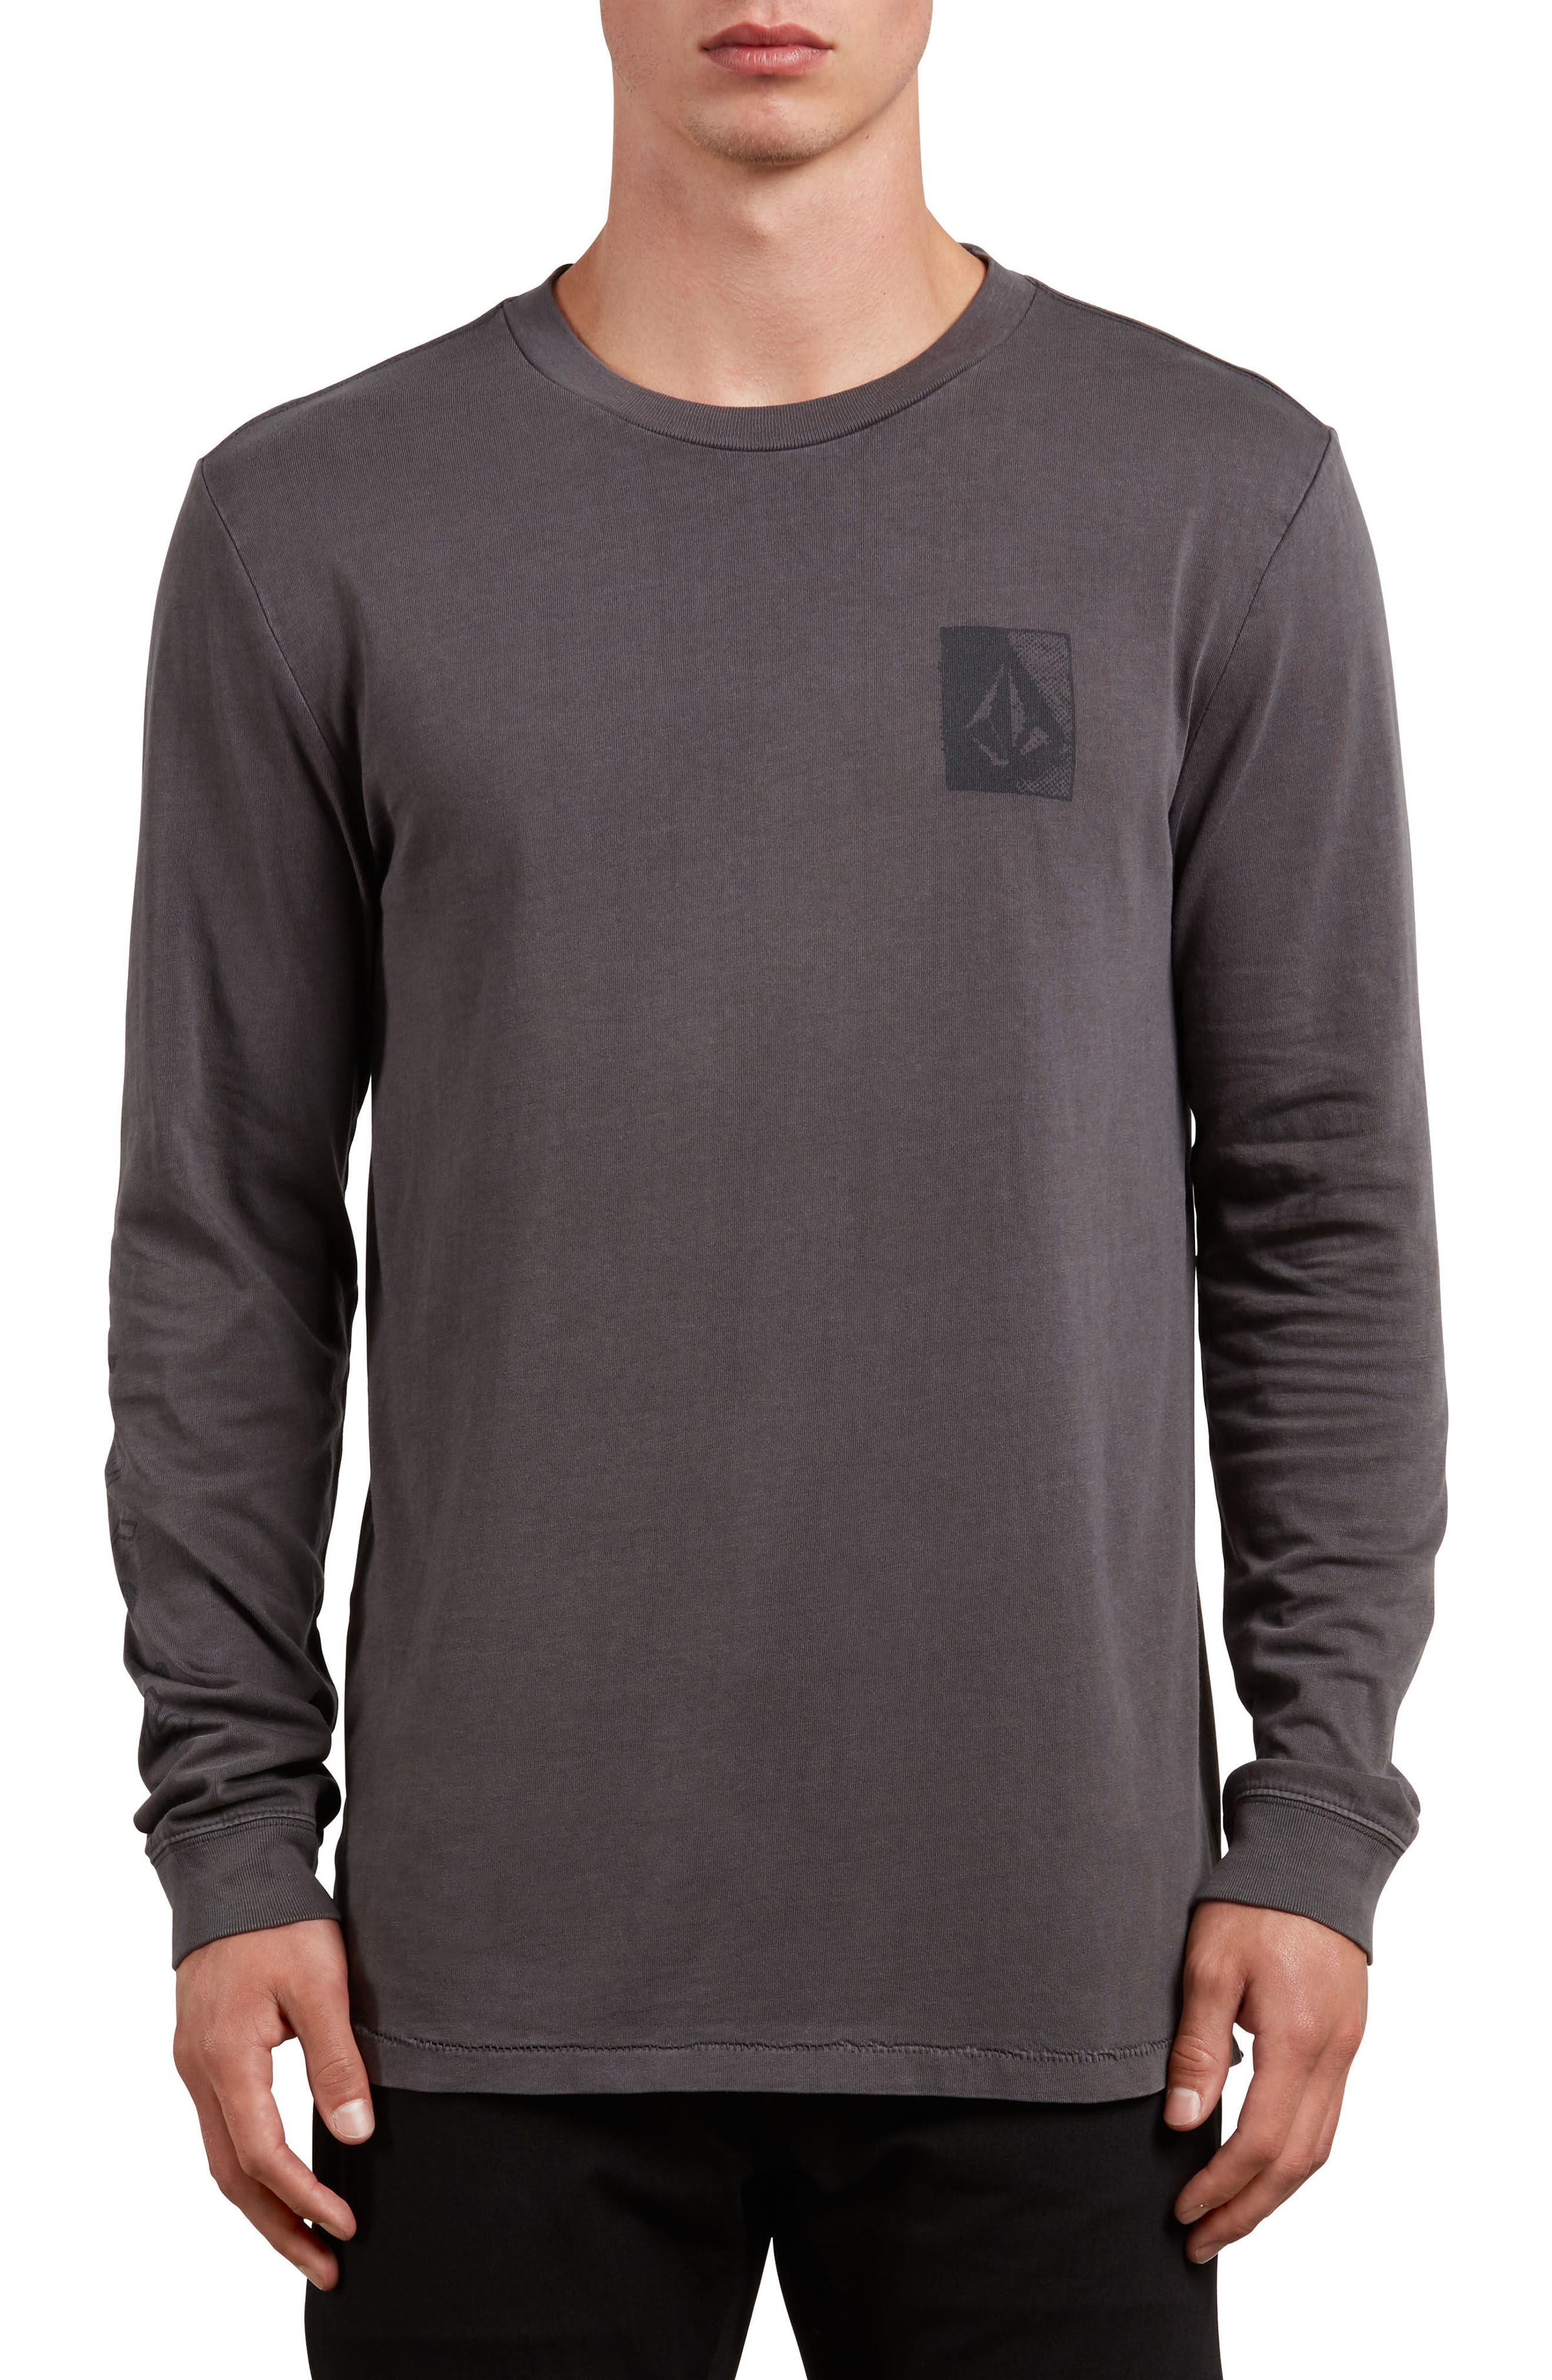 Freestate Knit T-Shirt,                         Main,                         color, 001